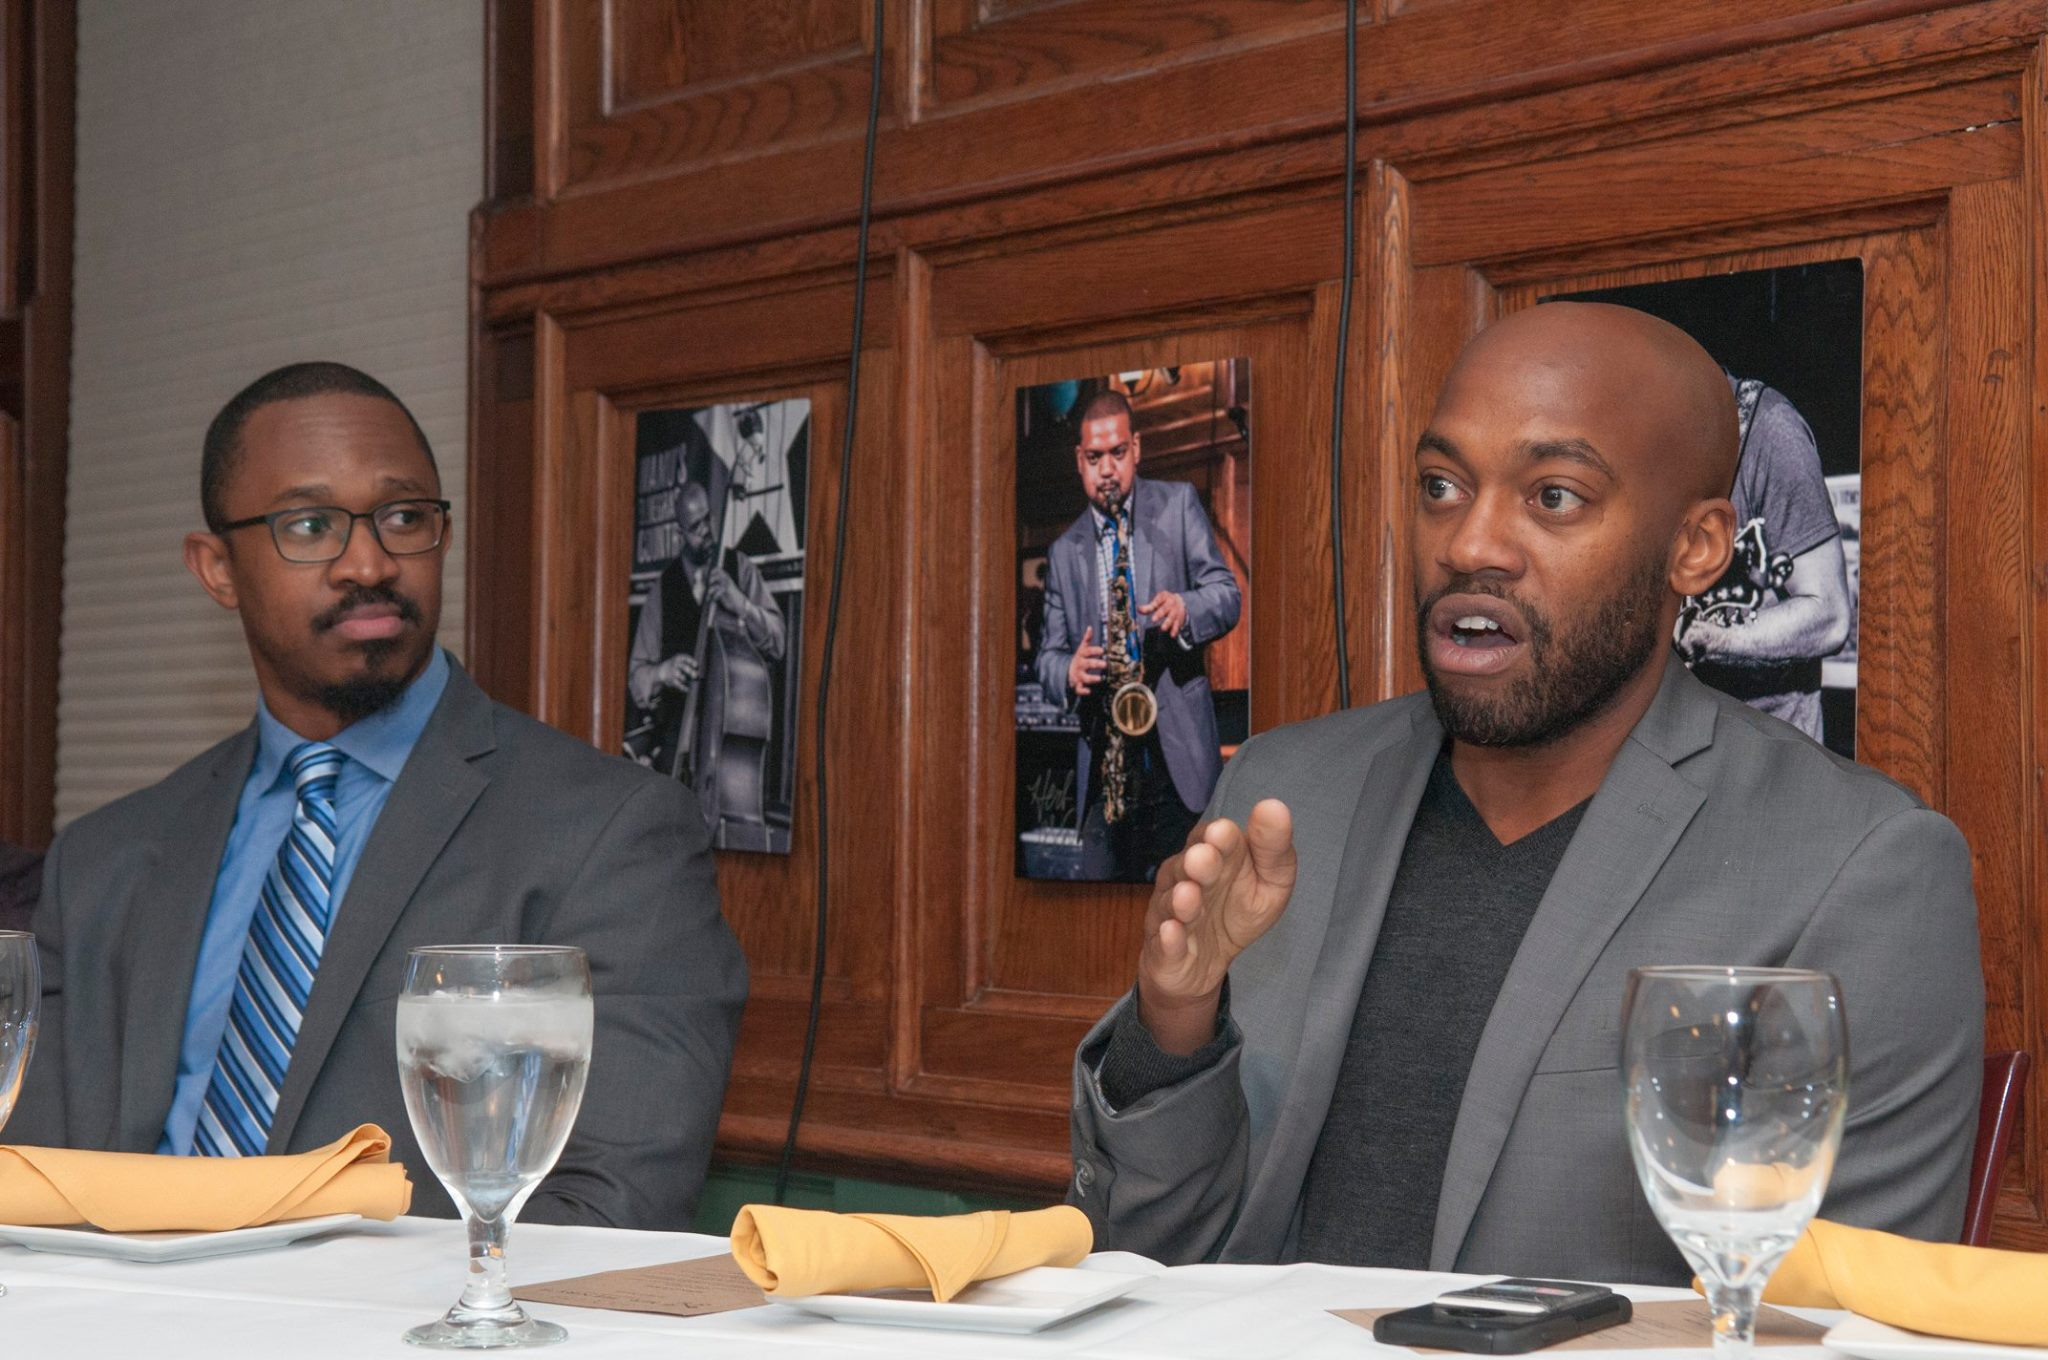 Sam Sanders says he must take charge of his own career as Joshua Johnson watches at Tuesday's Journal-isms Roundtable in Washington on Tuesday. (Credit: George Dalton Tolbert IV)